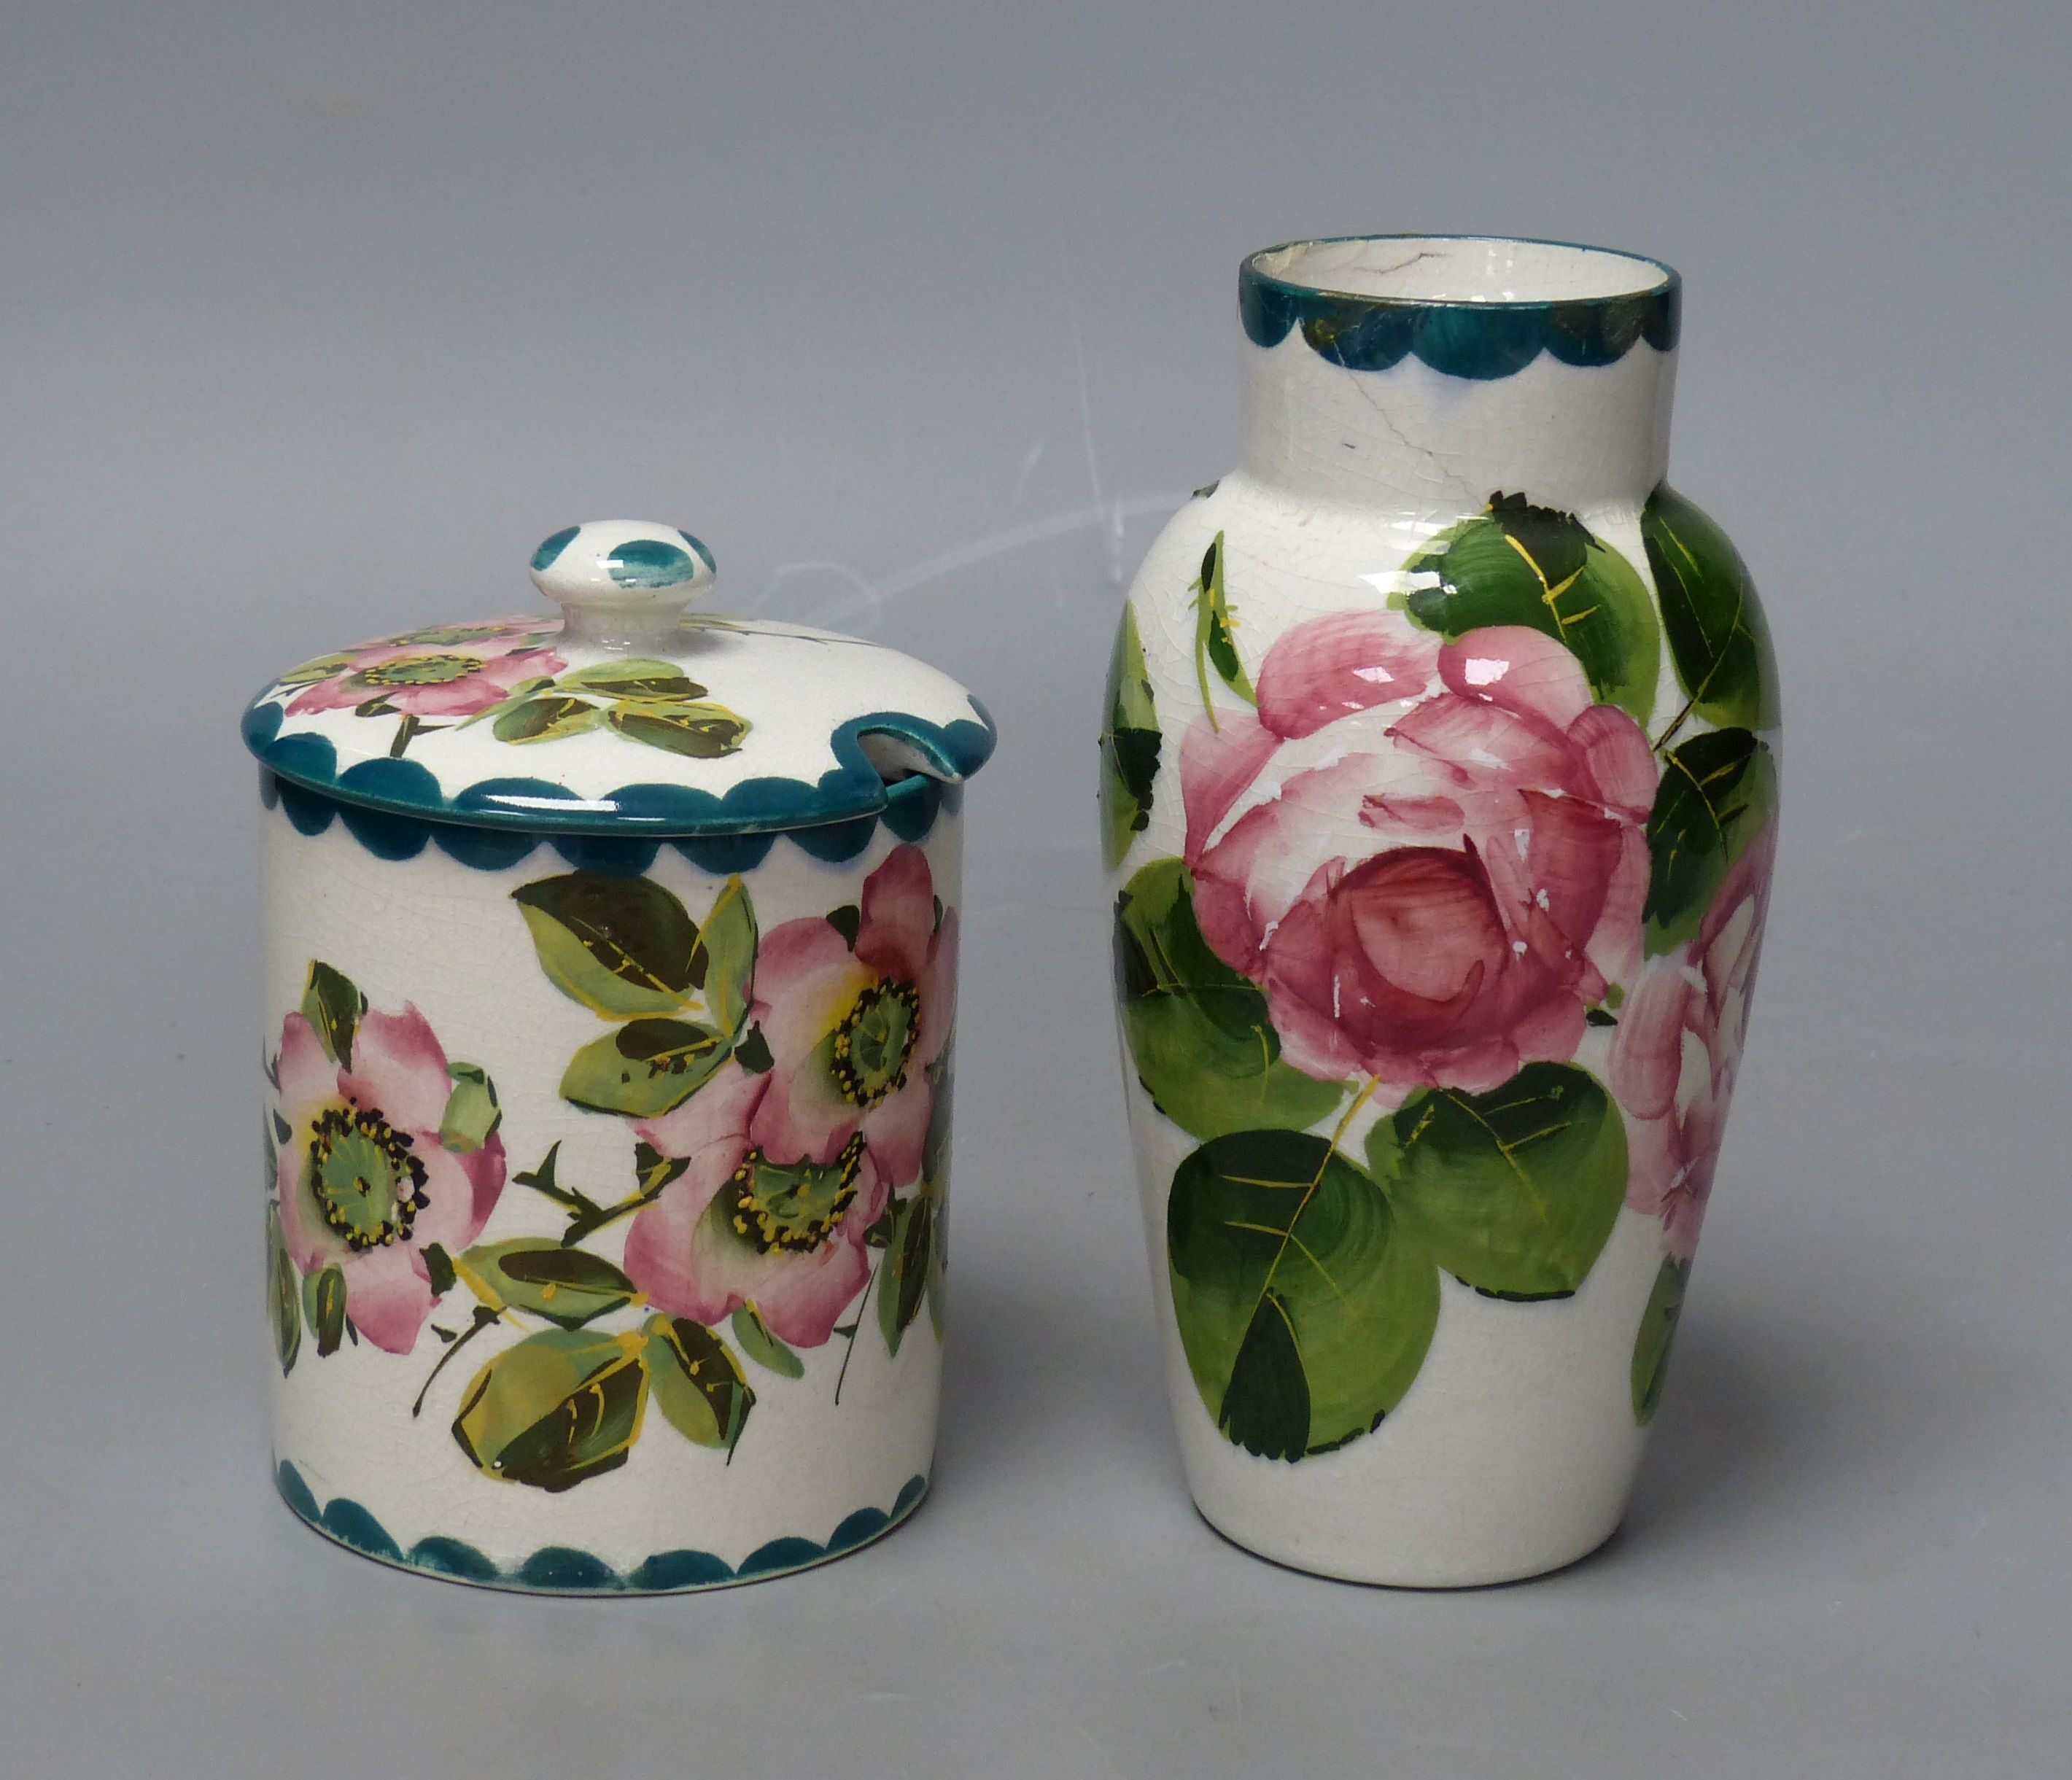 A Wemyss cabbage rose vase and an apple blossom sugar pot, tallest 16cm - Image 2 of 5